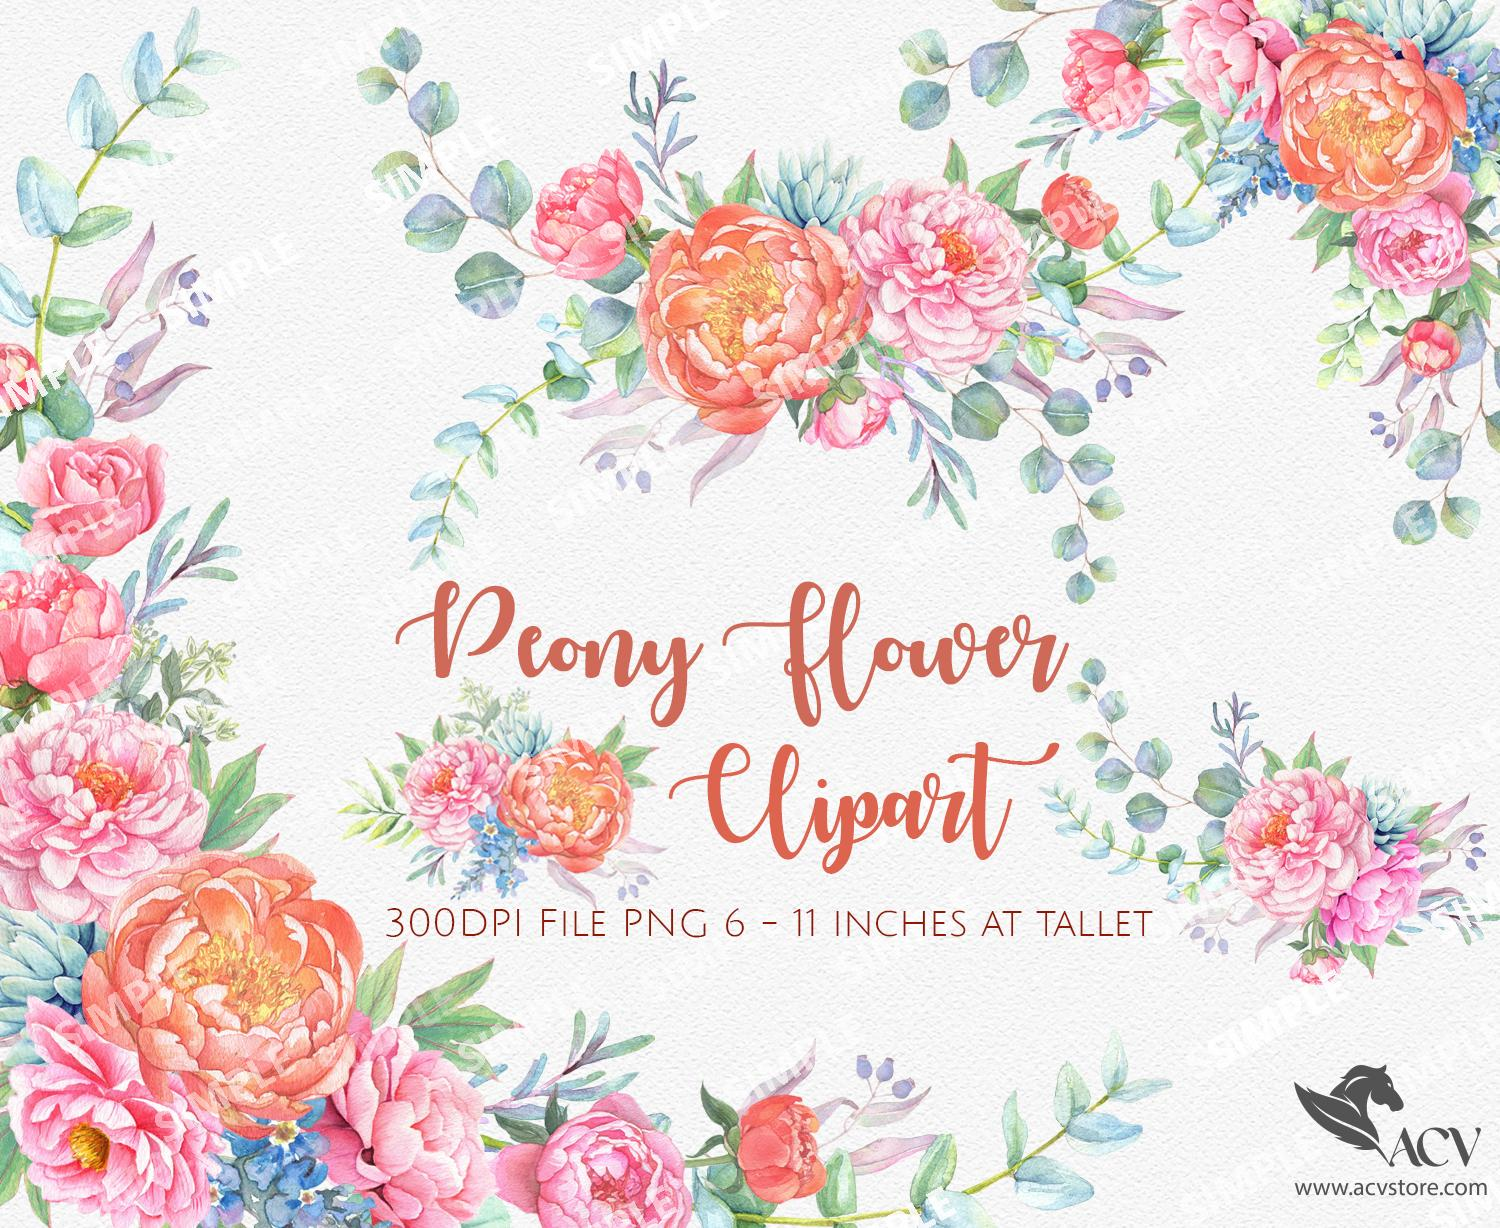 Peonies Watercolor Flowers Clipart, Spring Wedding Flowers, Hand painted Watercolour floral, Wedding invitation, greeting card | WCCTPN_5